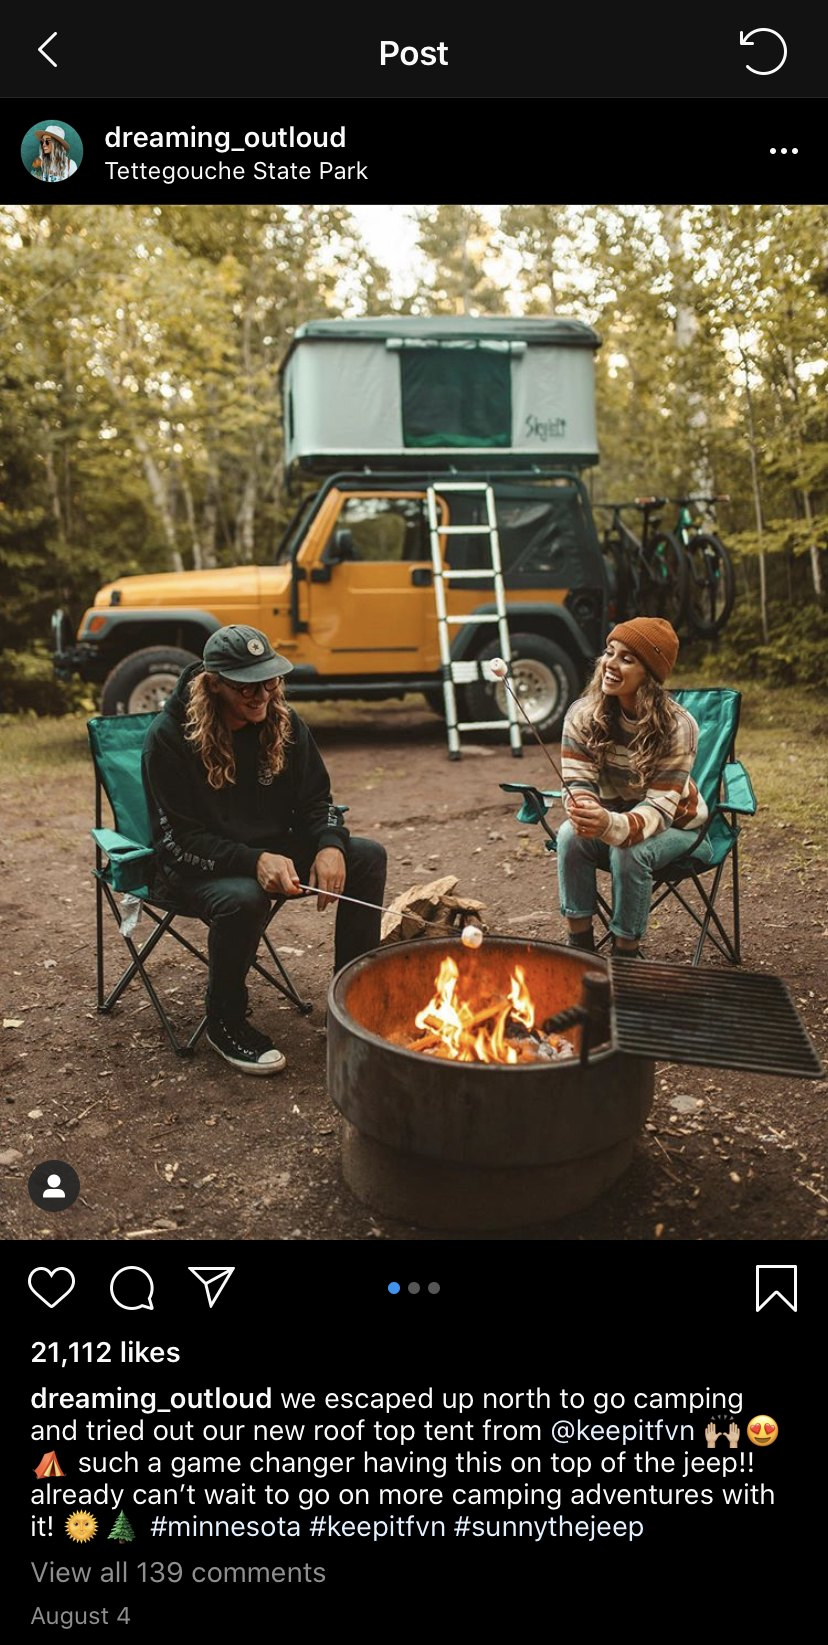 A screenshot of an Instagram post from an influencer featuring a campsite and a tent